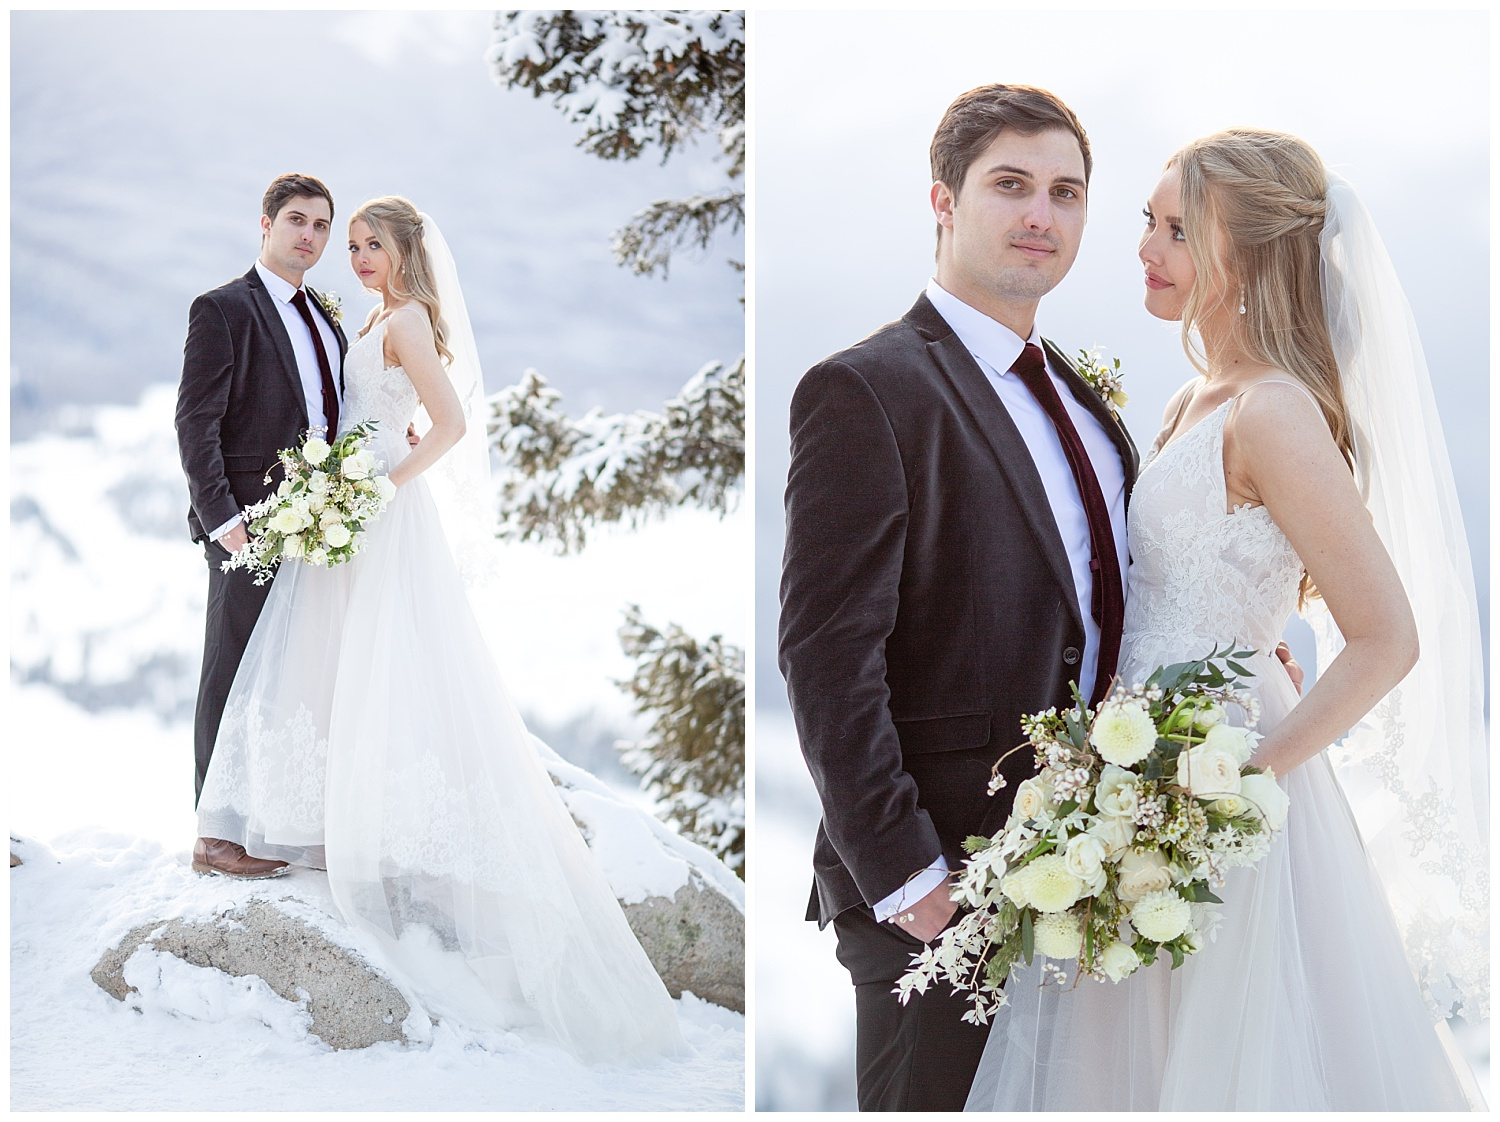 A snowy bridal session at Sapphire Point Overlook